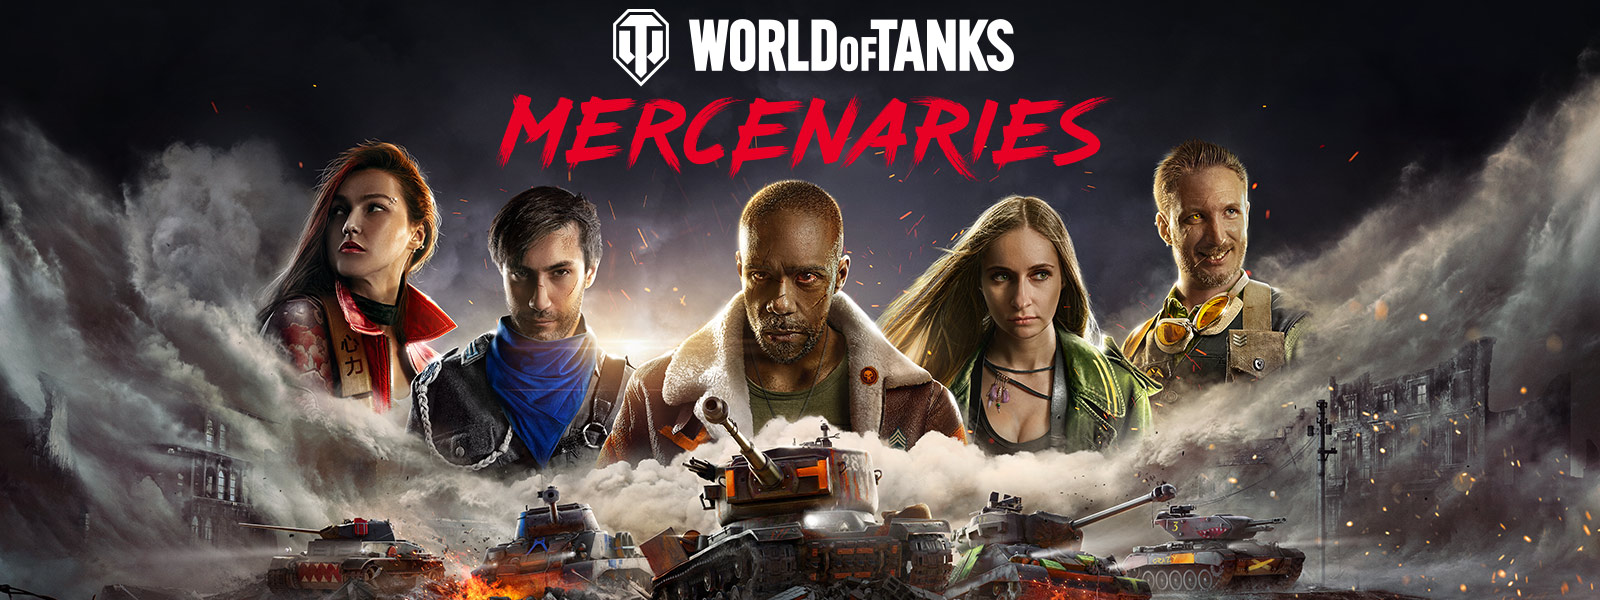 World of Tanks Mercenaries, vijf personages en tanks